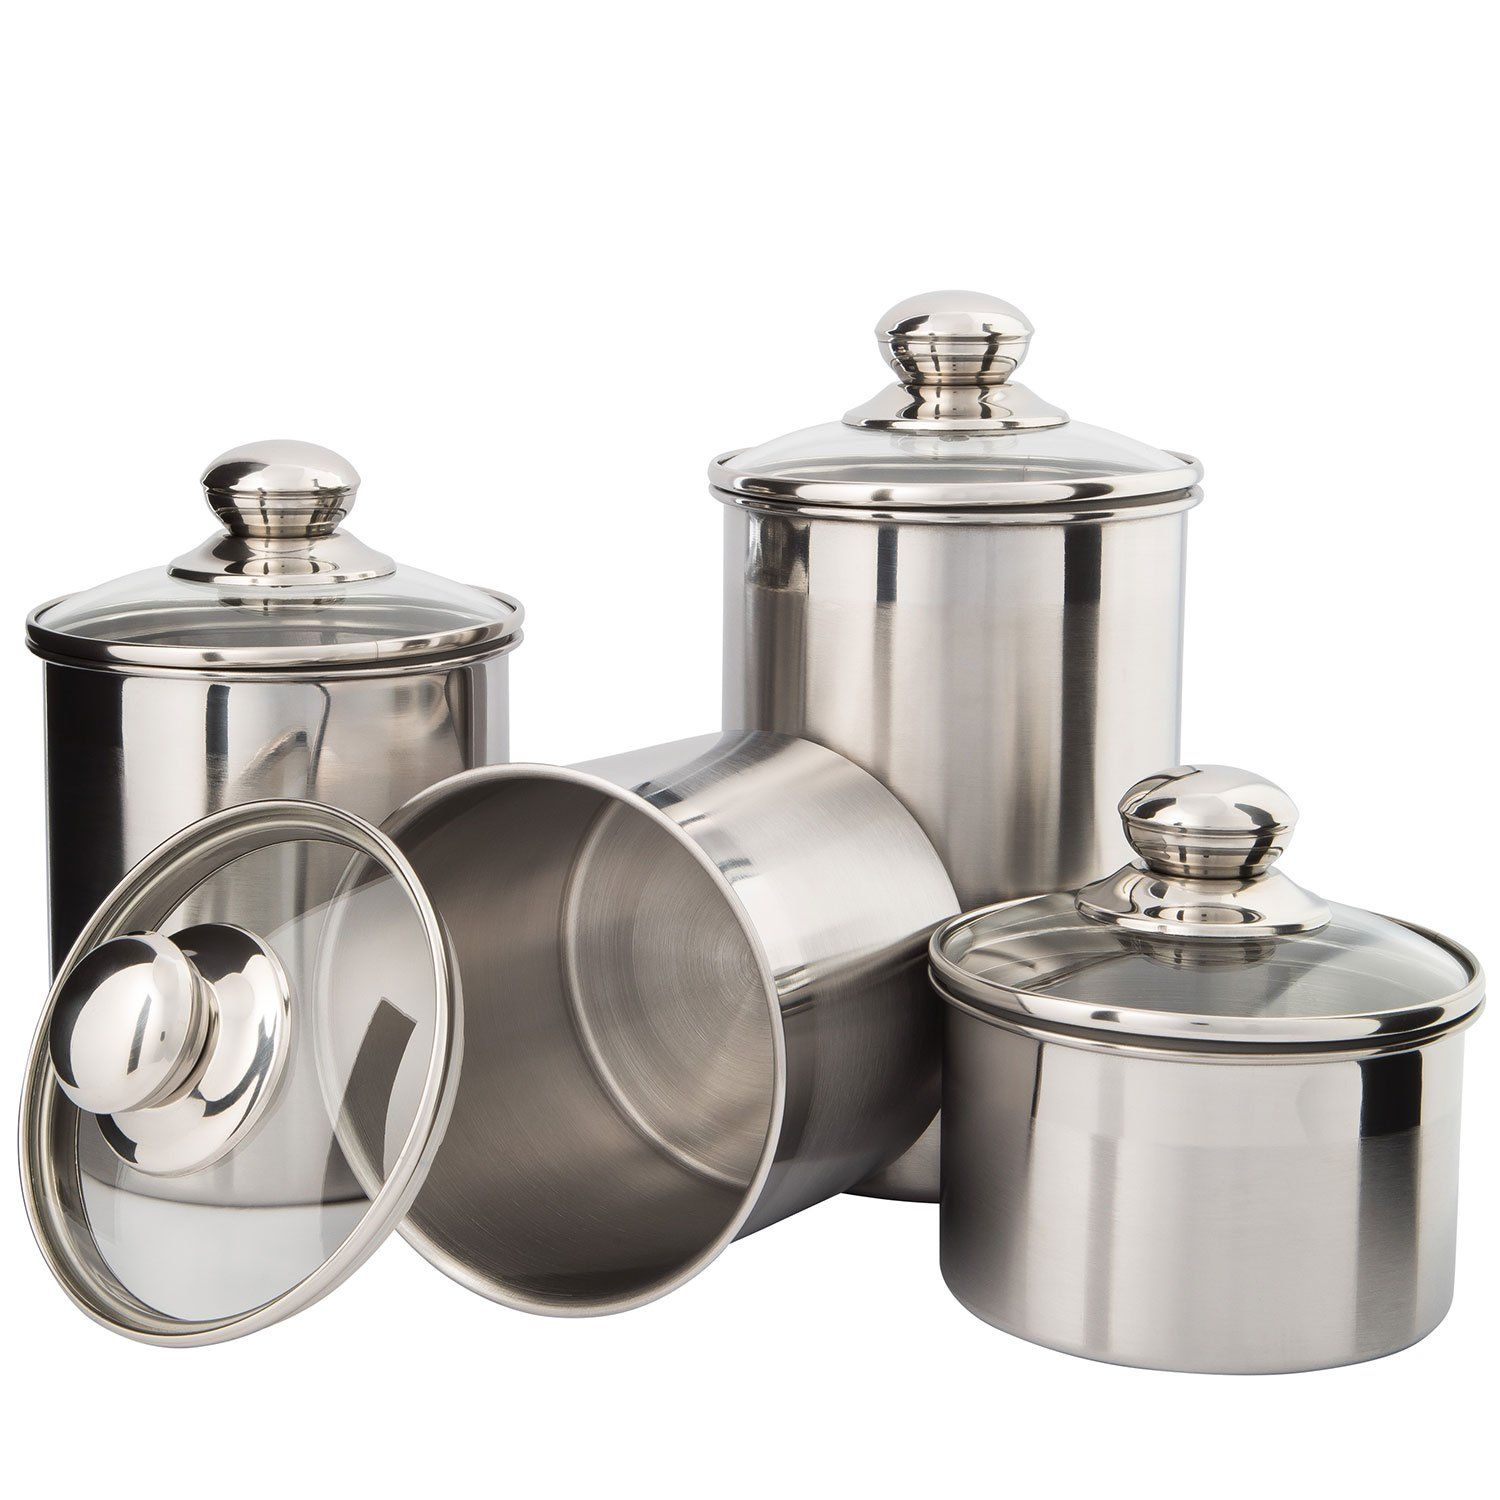 Canister Set Stainless Steel Beautiful Canisters For Kitchen